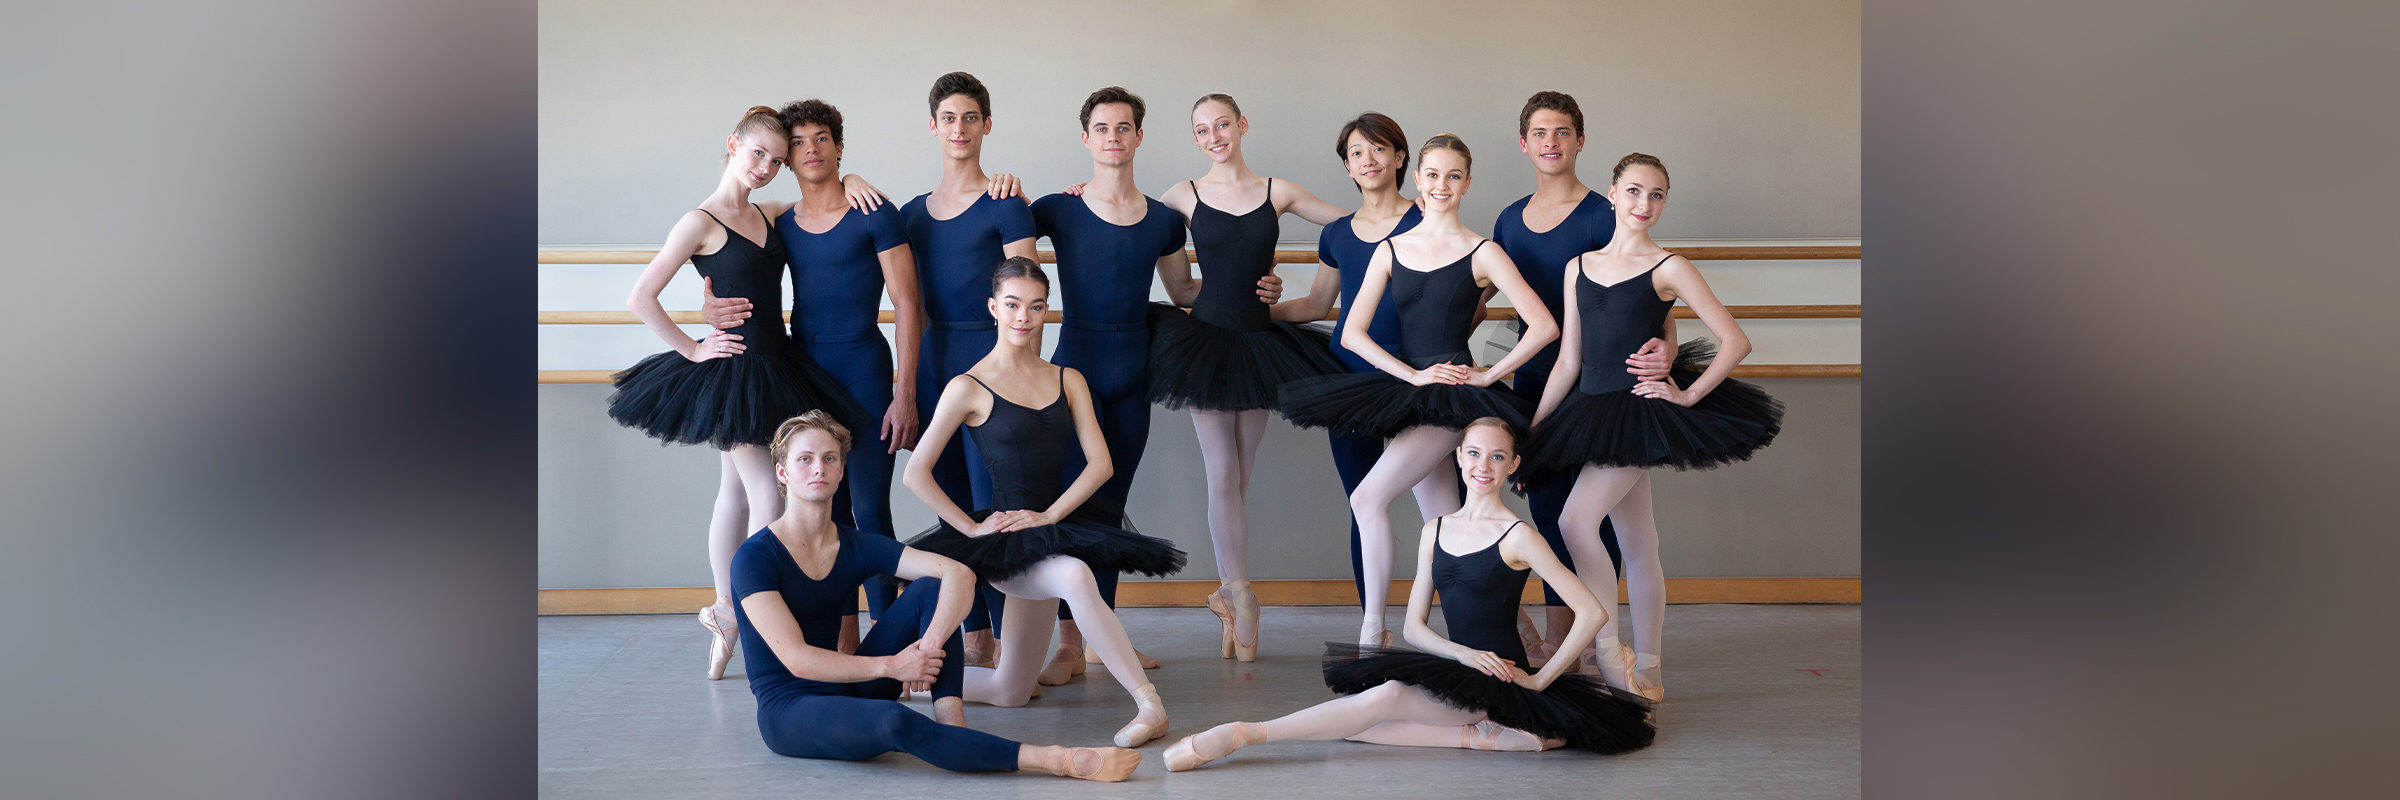 San Francisco Ballet School trainees // © Chris Hardy